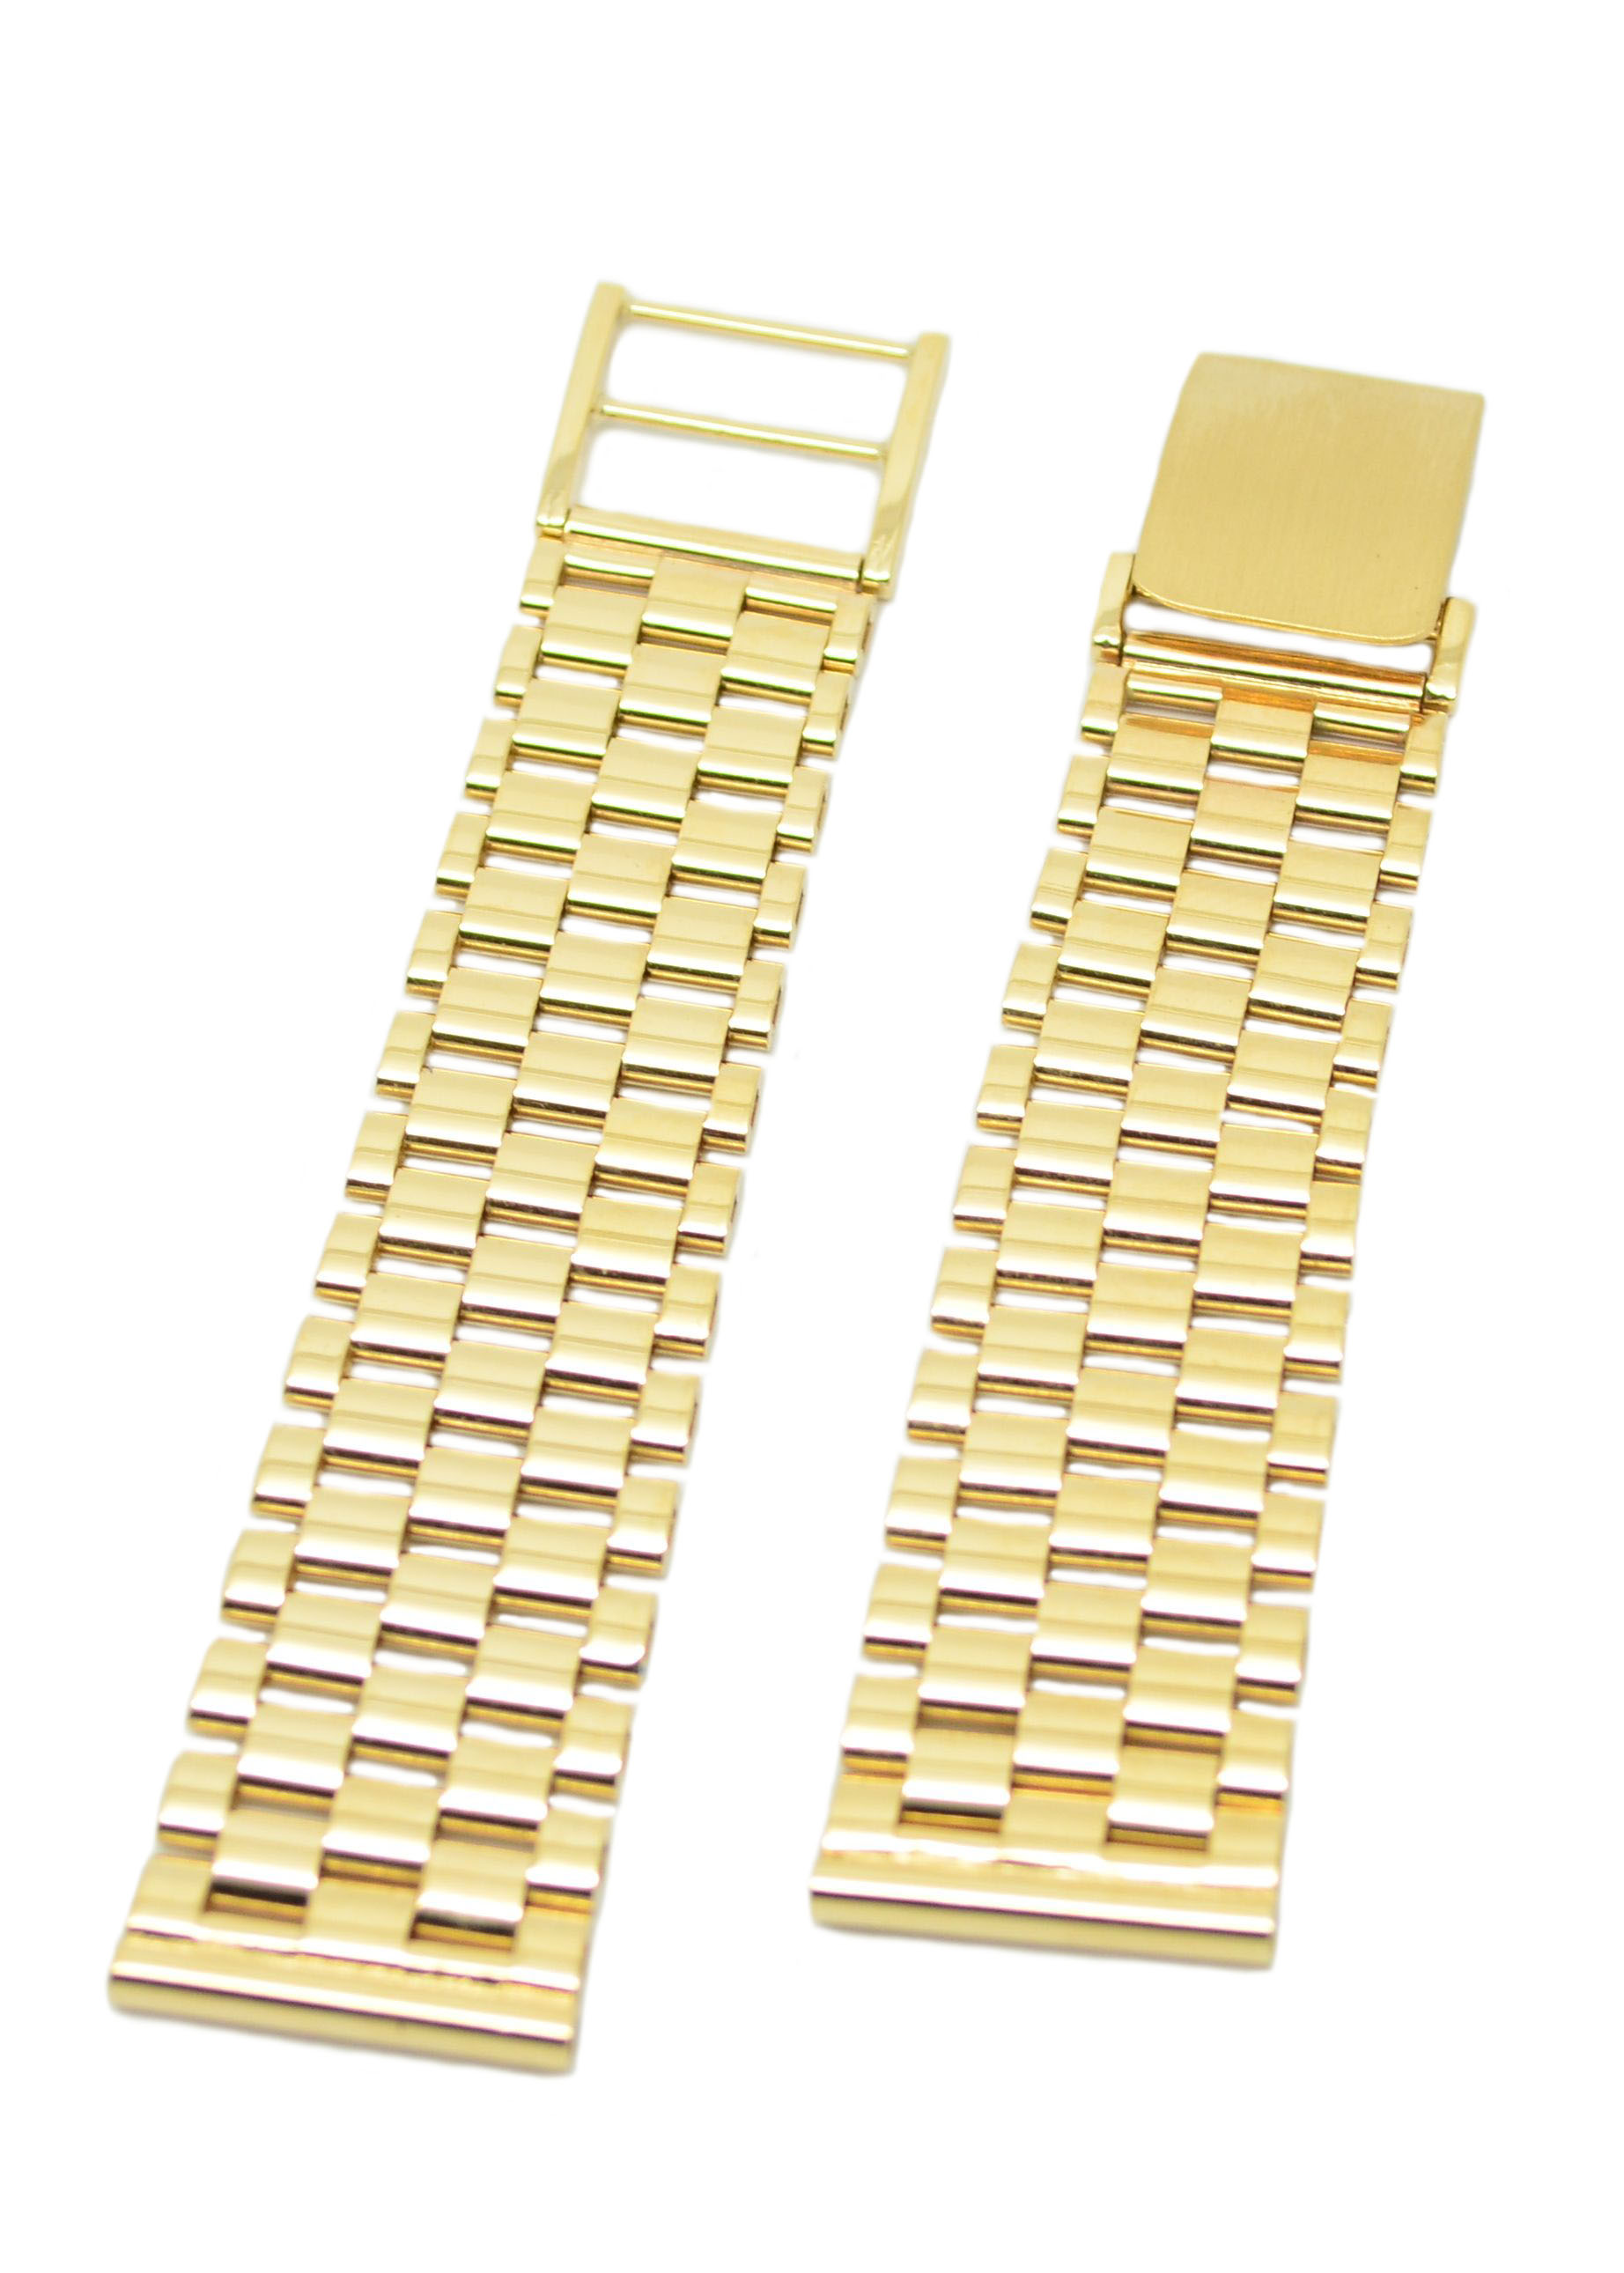 Gents 9ct Solid Gold Two Piece Watch Bracelet With Ladder Clasp Brick Link Pattern